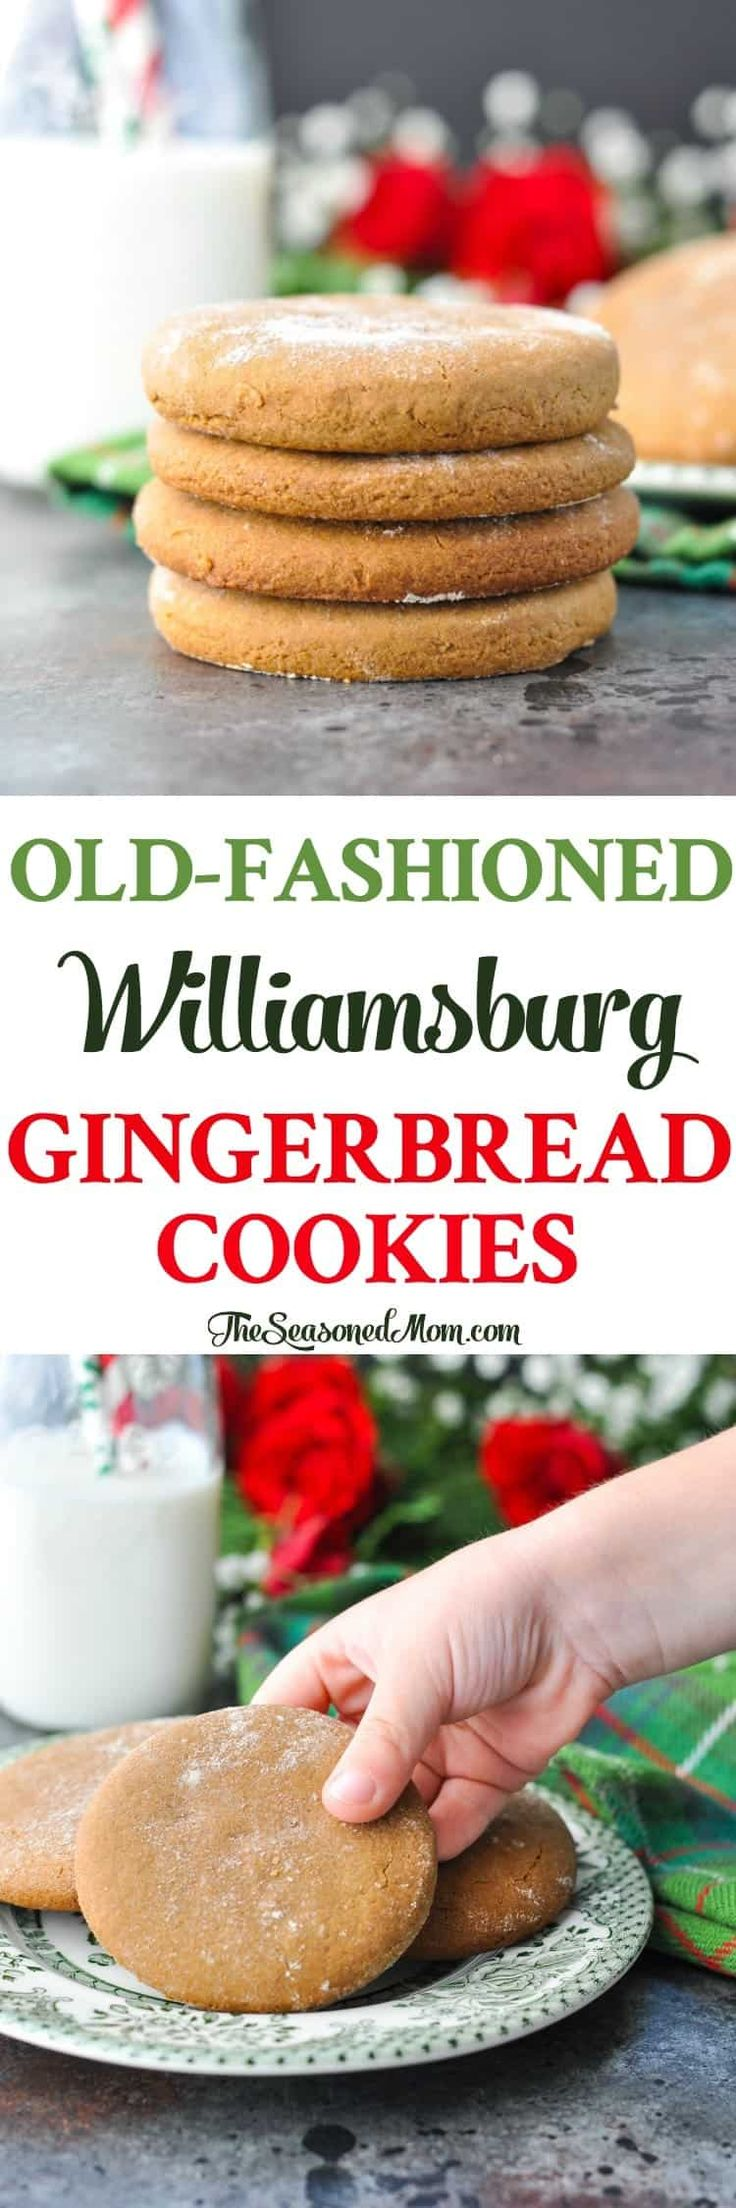 Old-Fashioned Williamsburg Gingerbread Cookies – JR Stafford